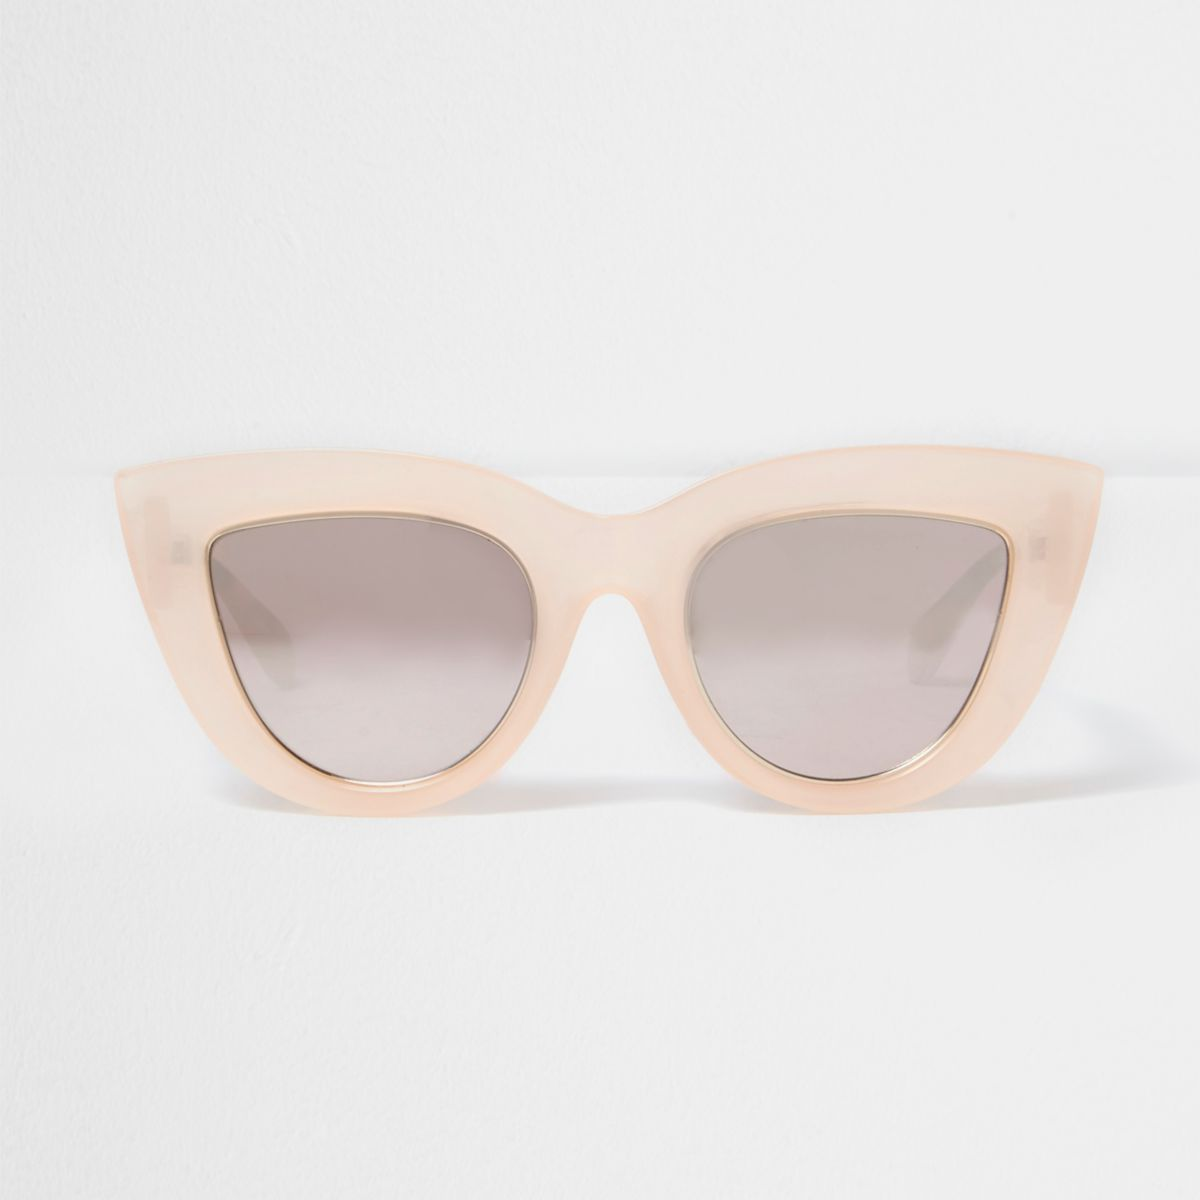 Light pink oversized cat eye sunglasses